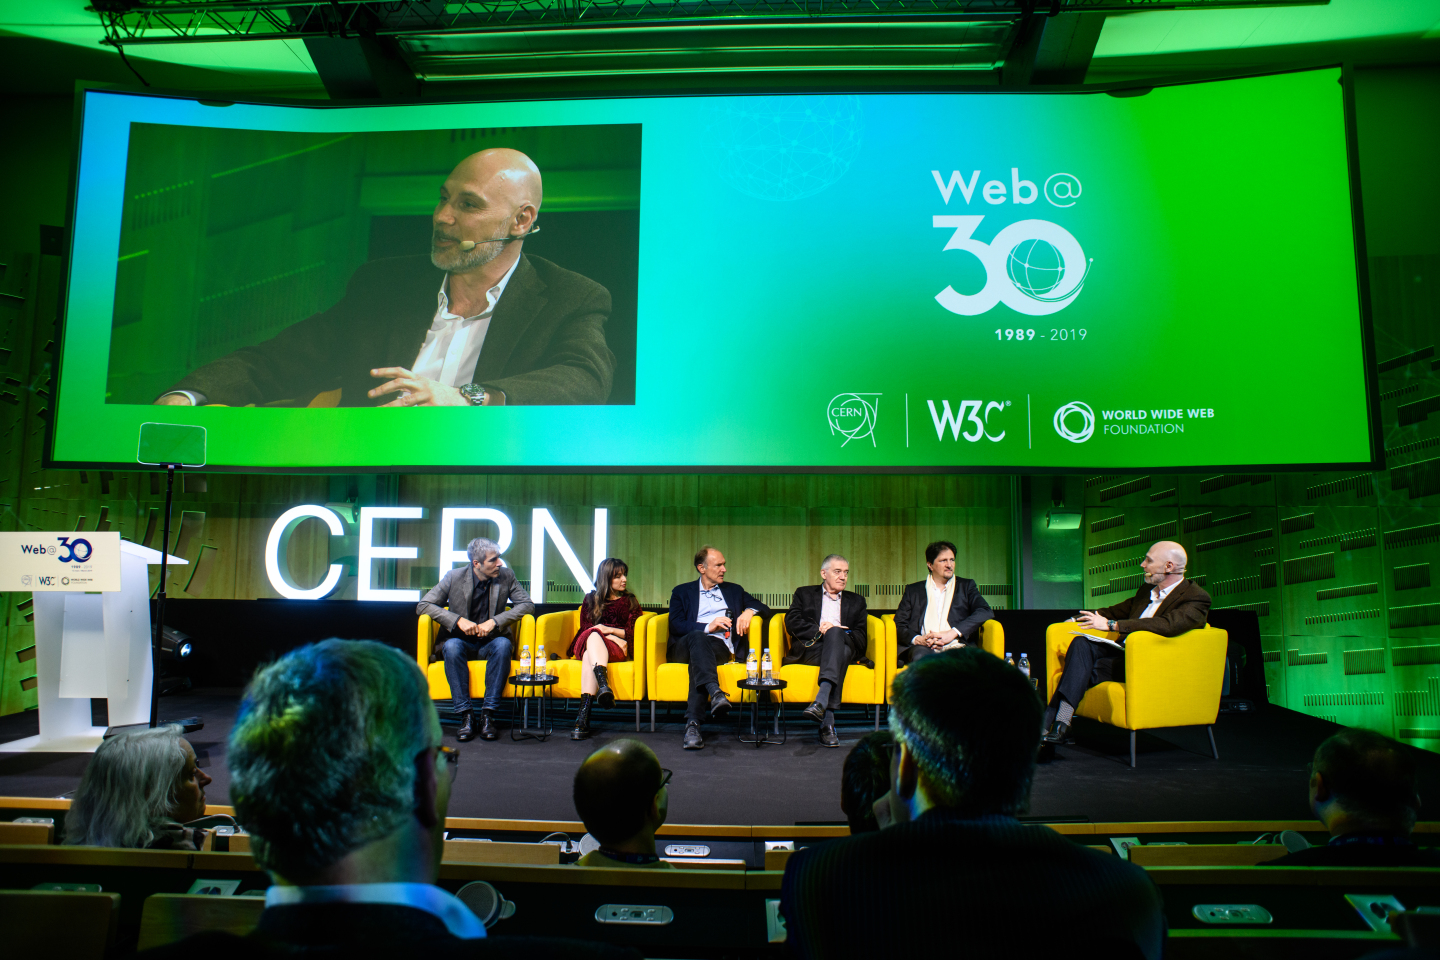 WEB@30 official ceremony